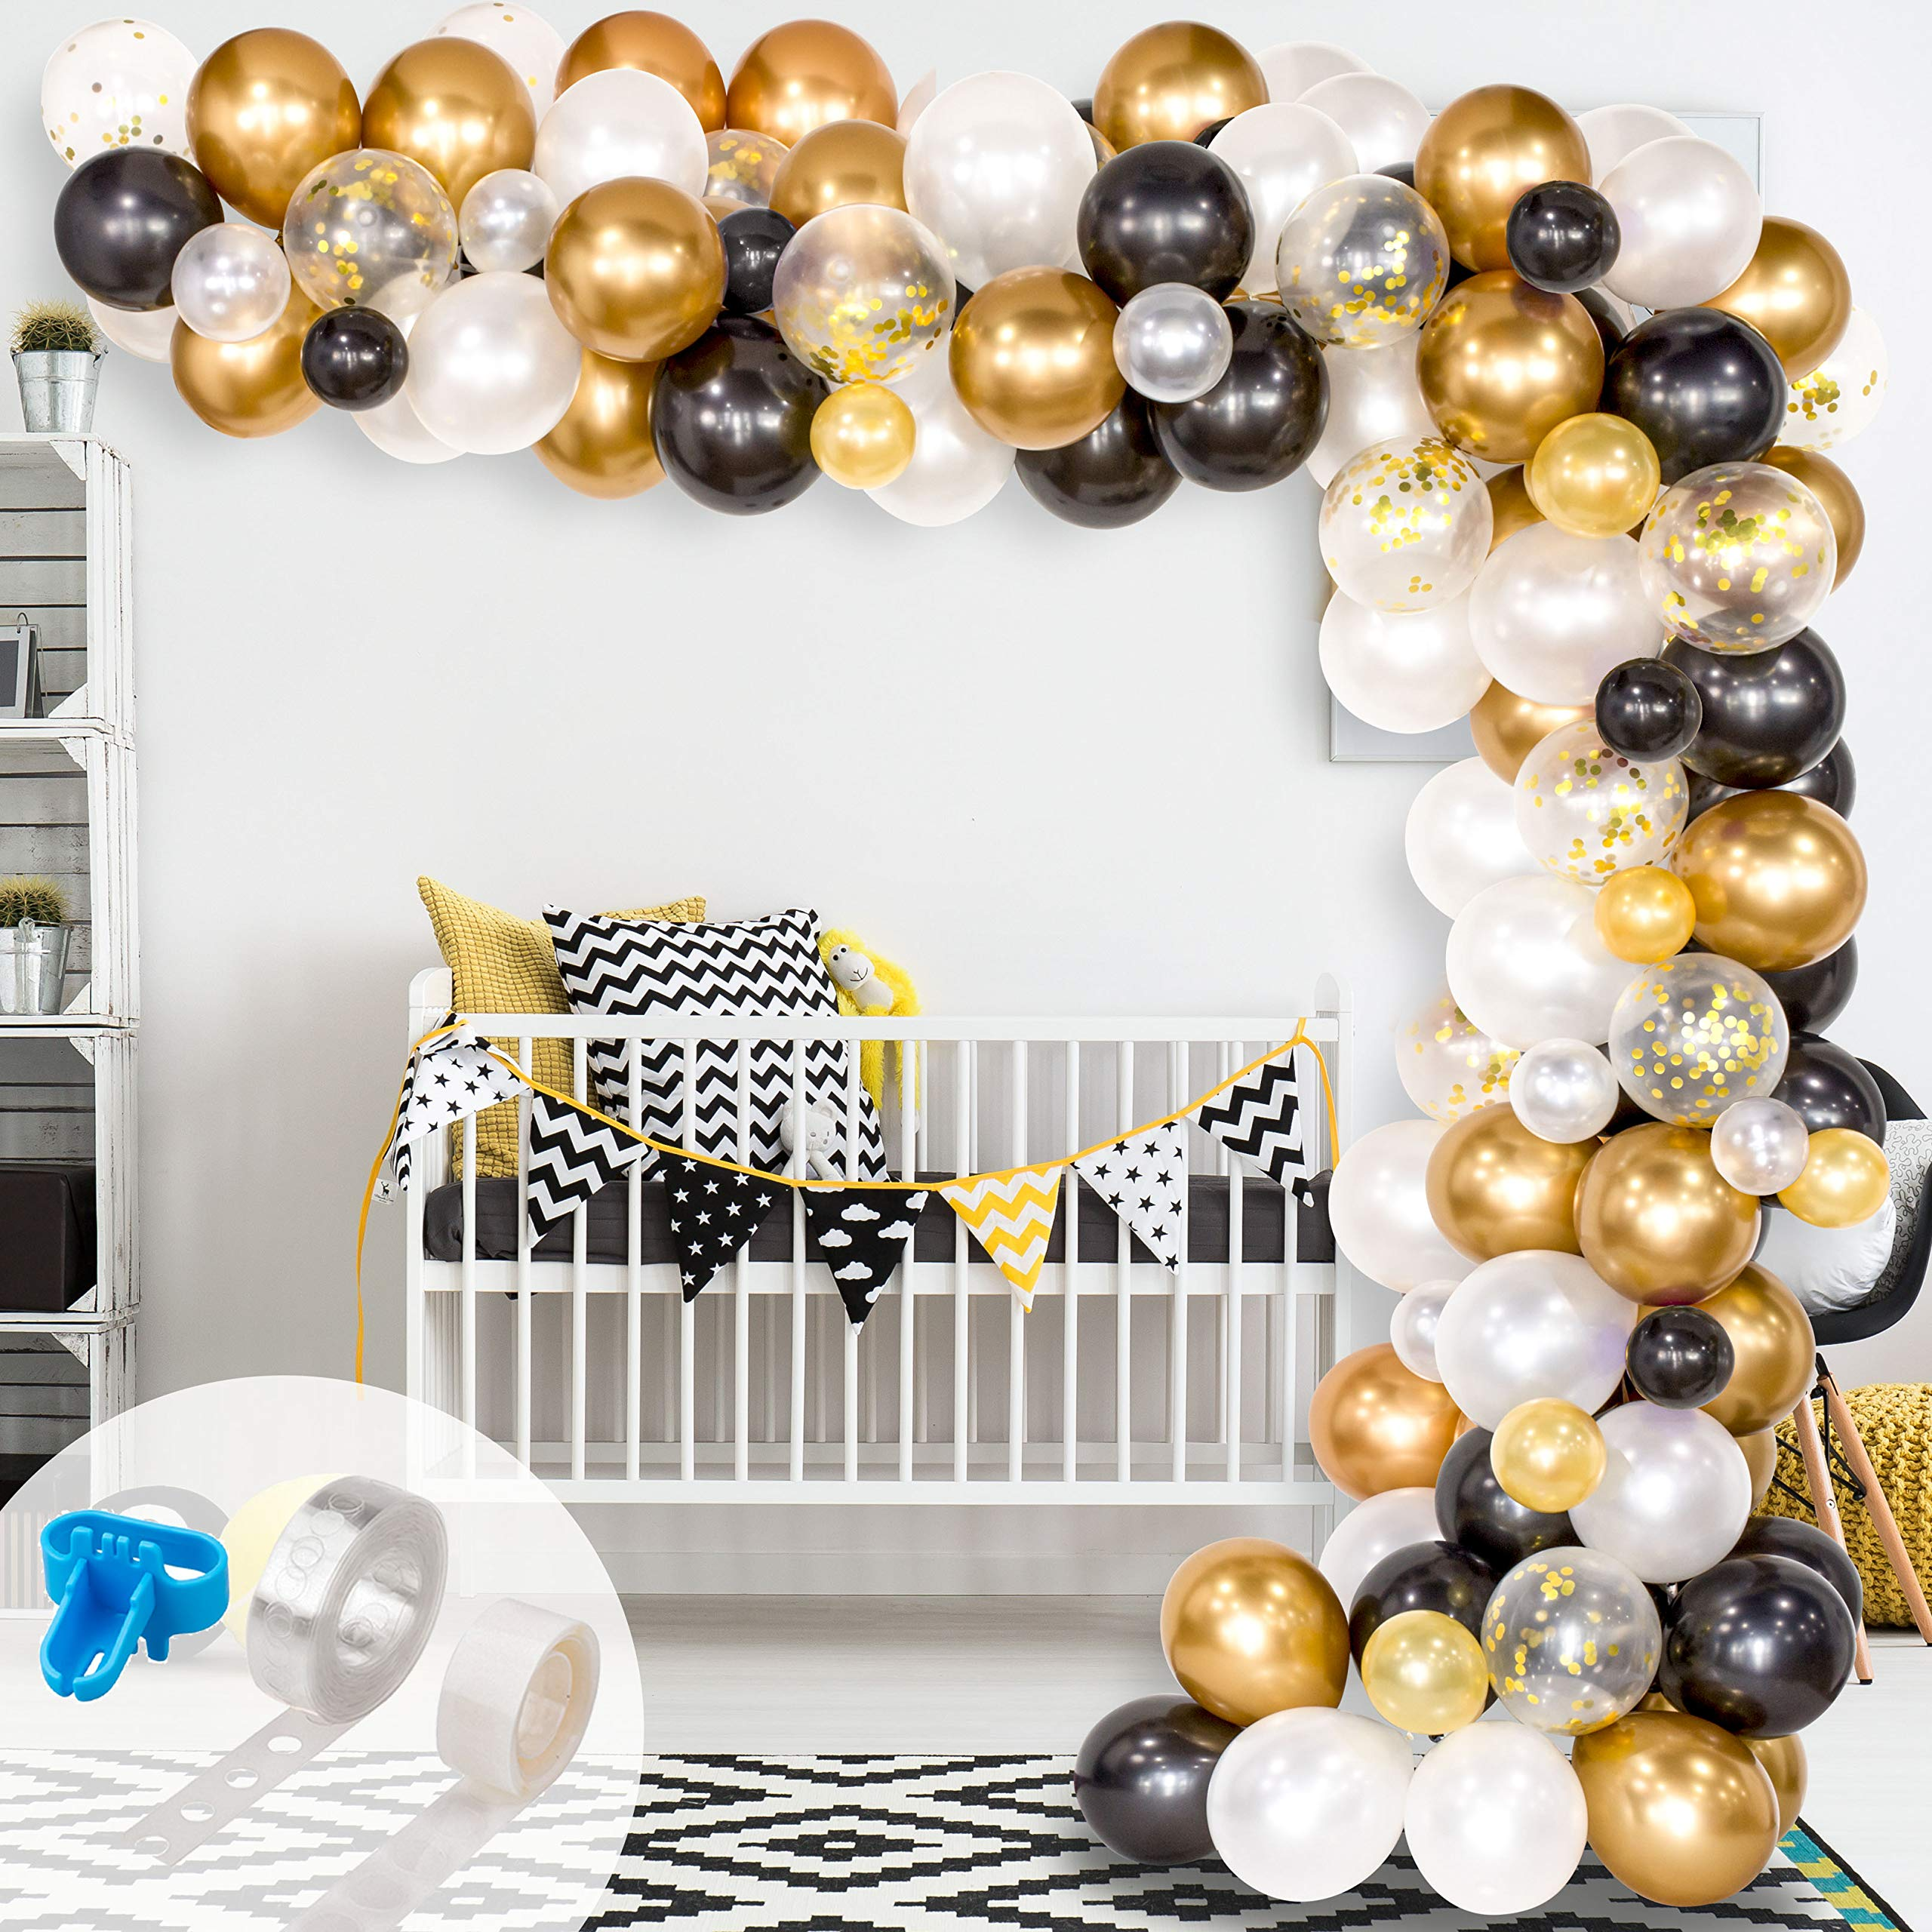 Whaline Graduation Balloon Arch & Garland Kit, 120Pcs Black, White, Gold Confetti and Metal Latex Balloons with 1pcs Tying Tool, Balloon Strip Tape and Glue Dots for Wedding Birthday Grad Party Decor